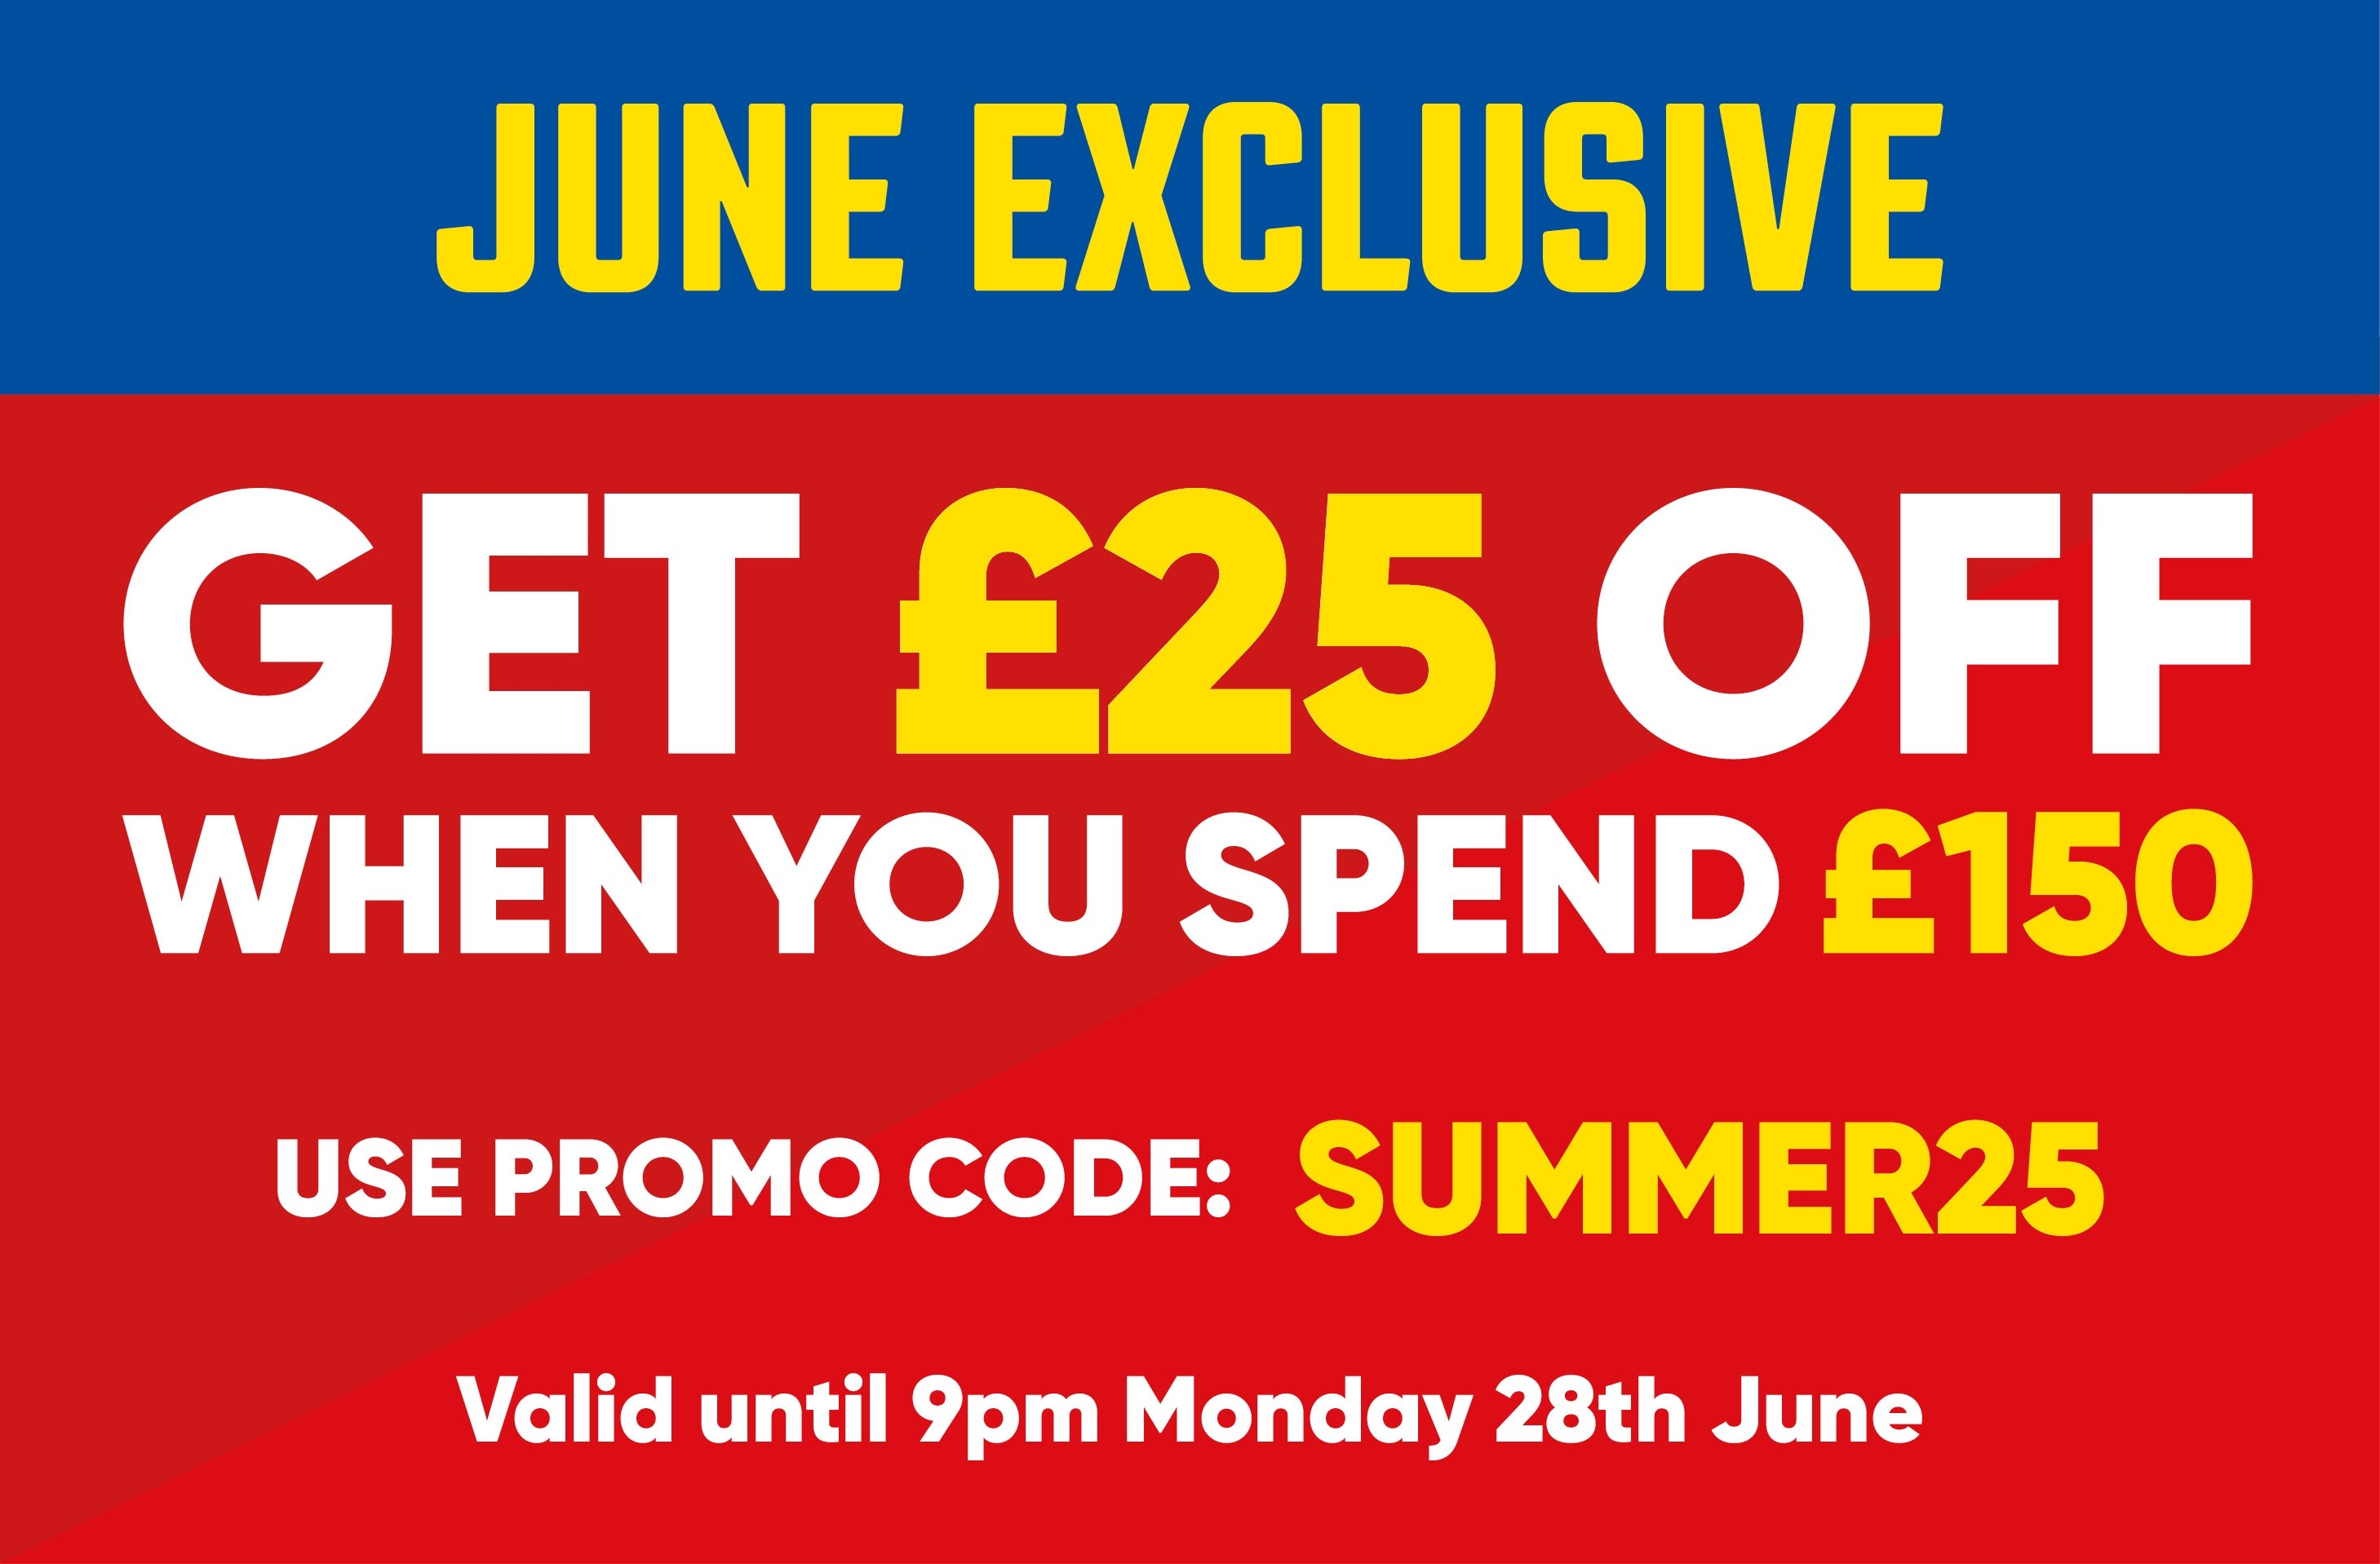 Get £25 off when you spend £150. Use promo code SUMMER25